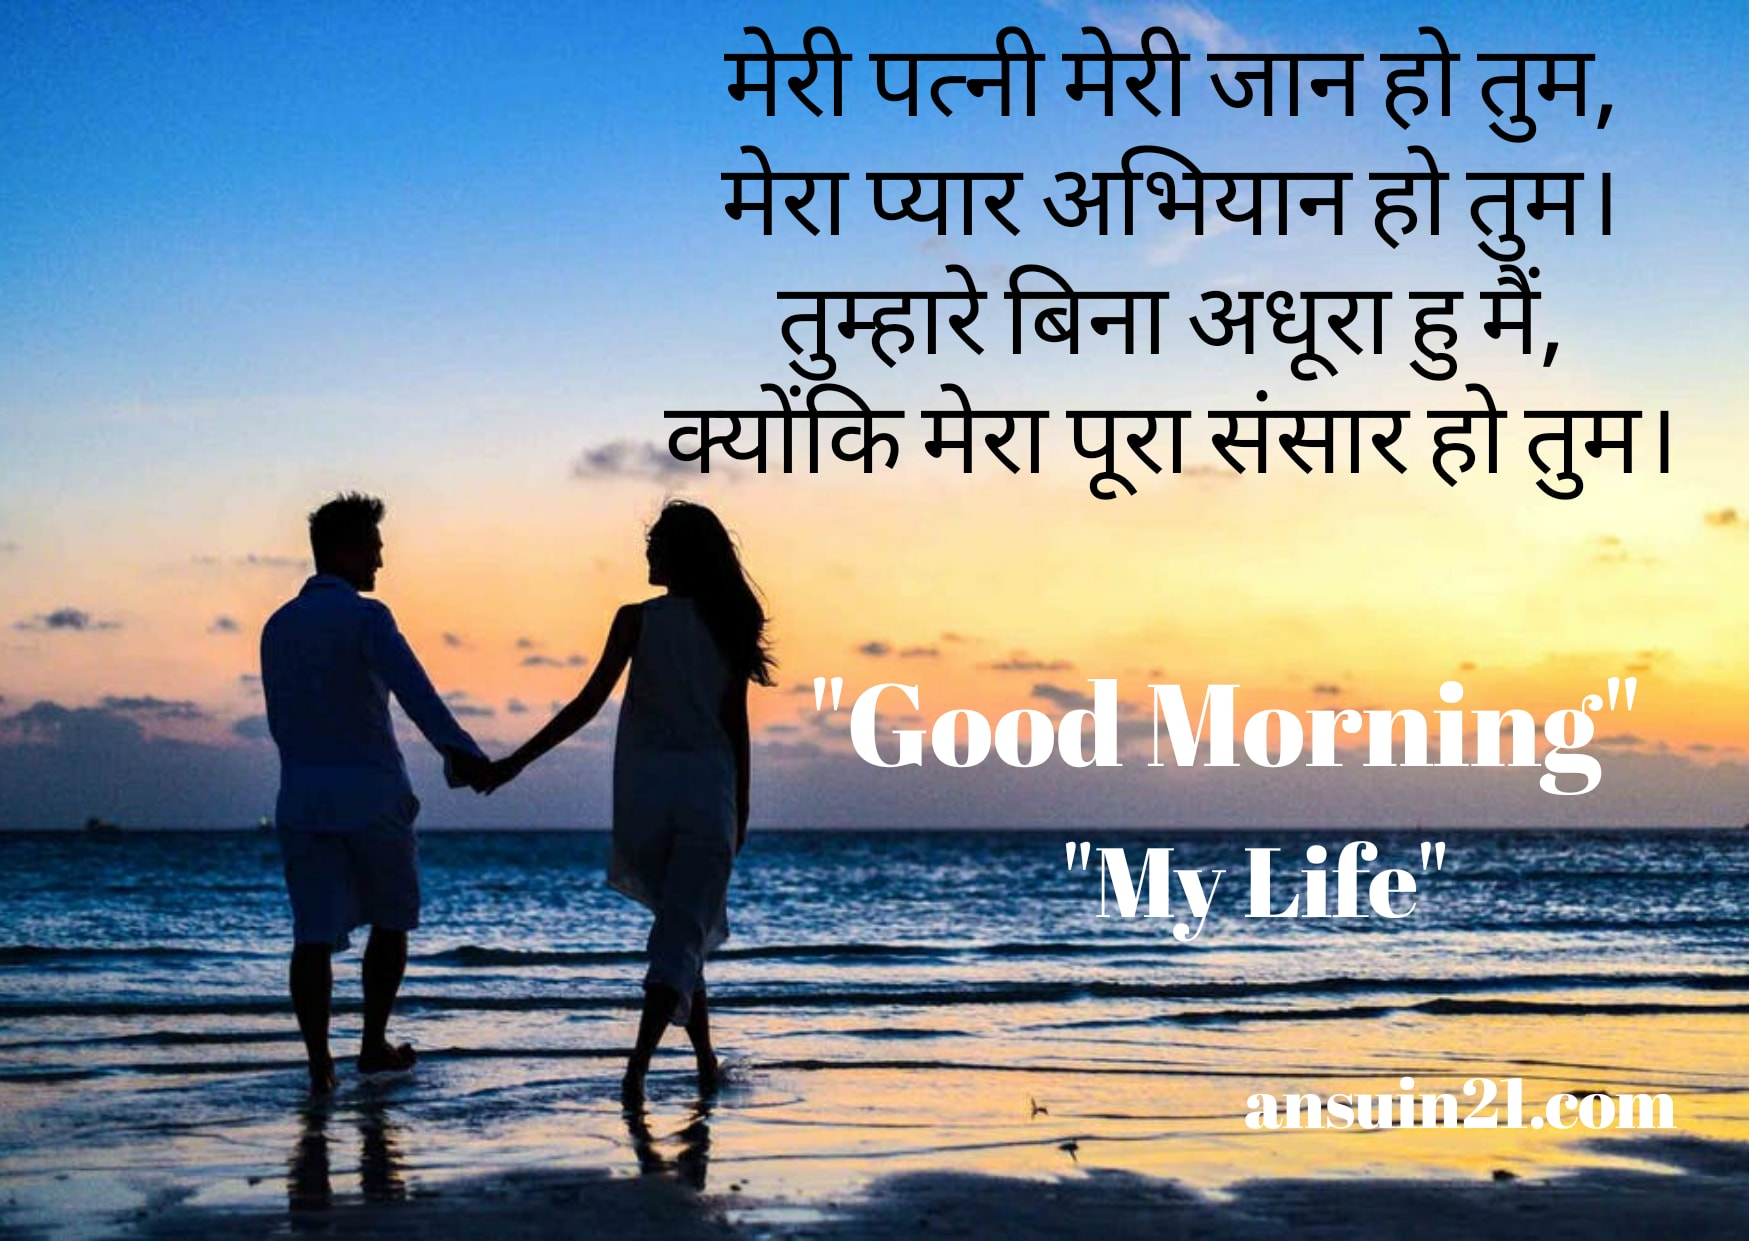 Good Morning Images for Wife Hindi, Good Morning Quotes wishes for Wife & lover